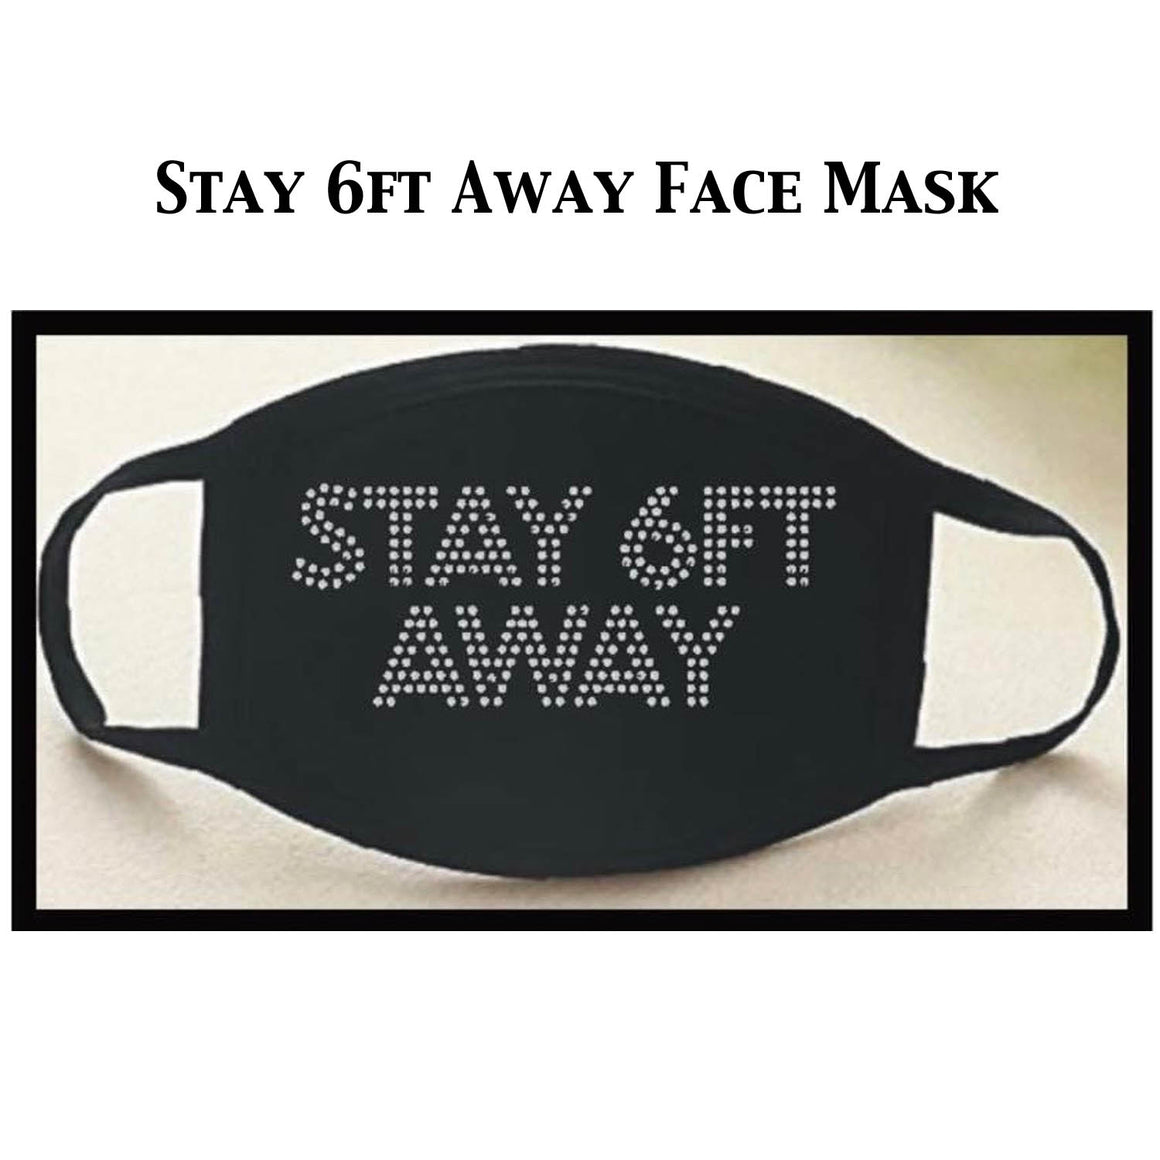 SIX FEET AWAY MASK